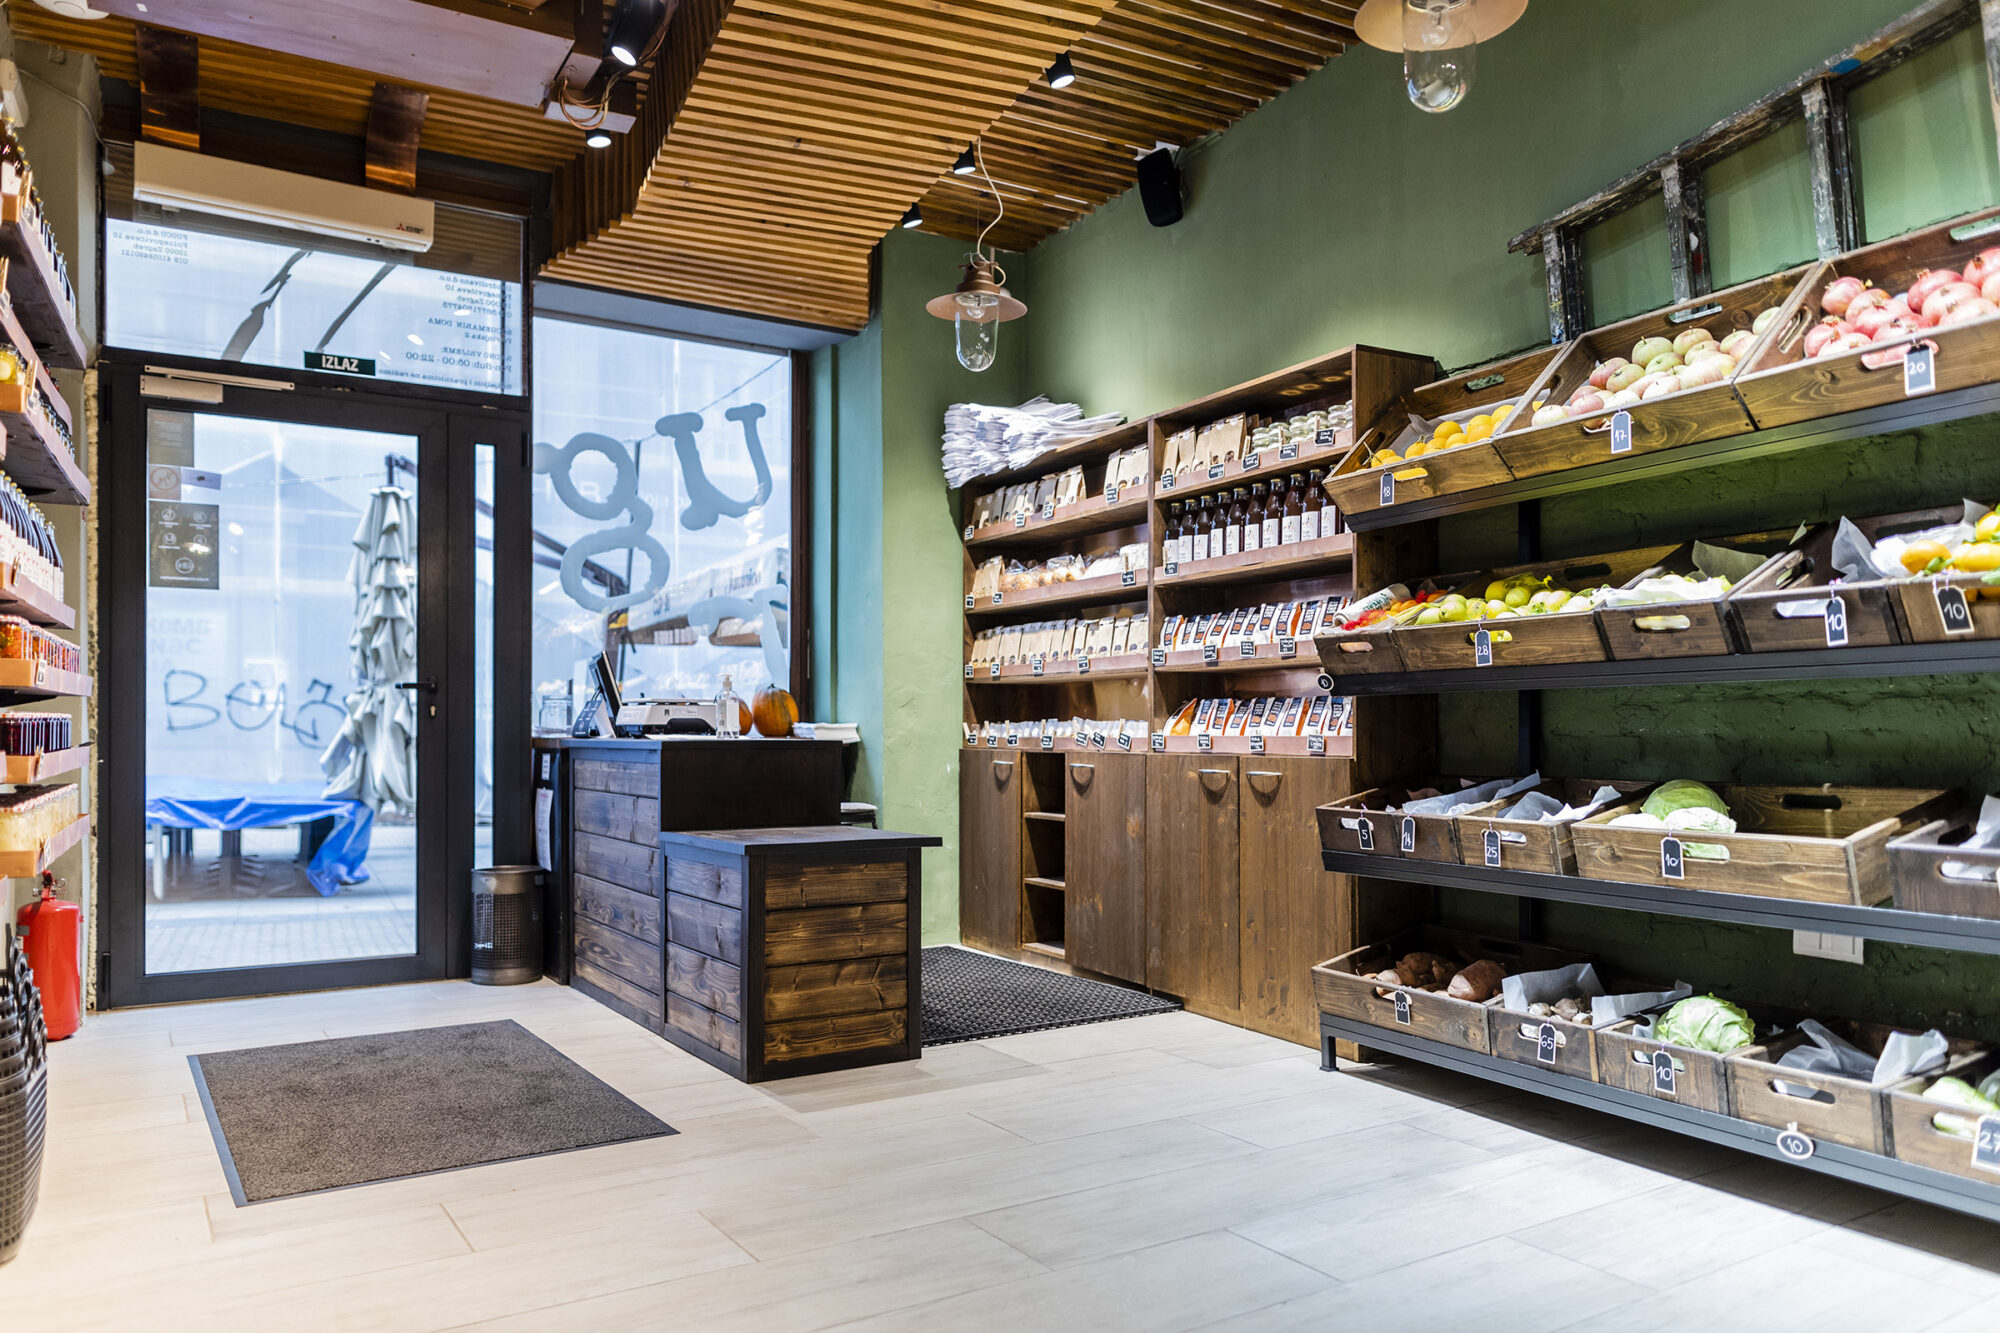 Rougemarin Doma – first store in Croatia specializing in home-cooked meals